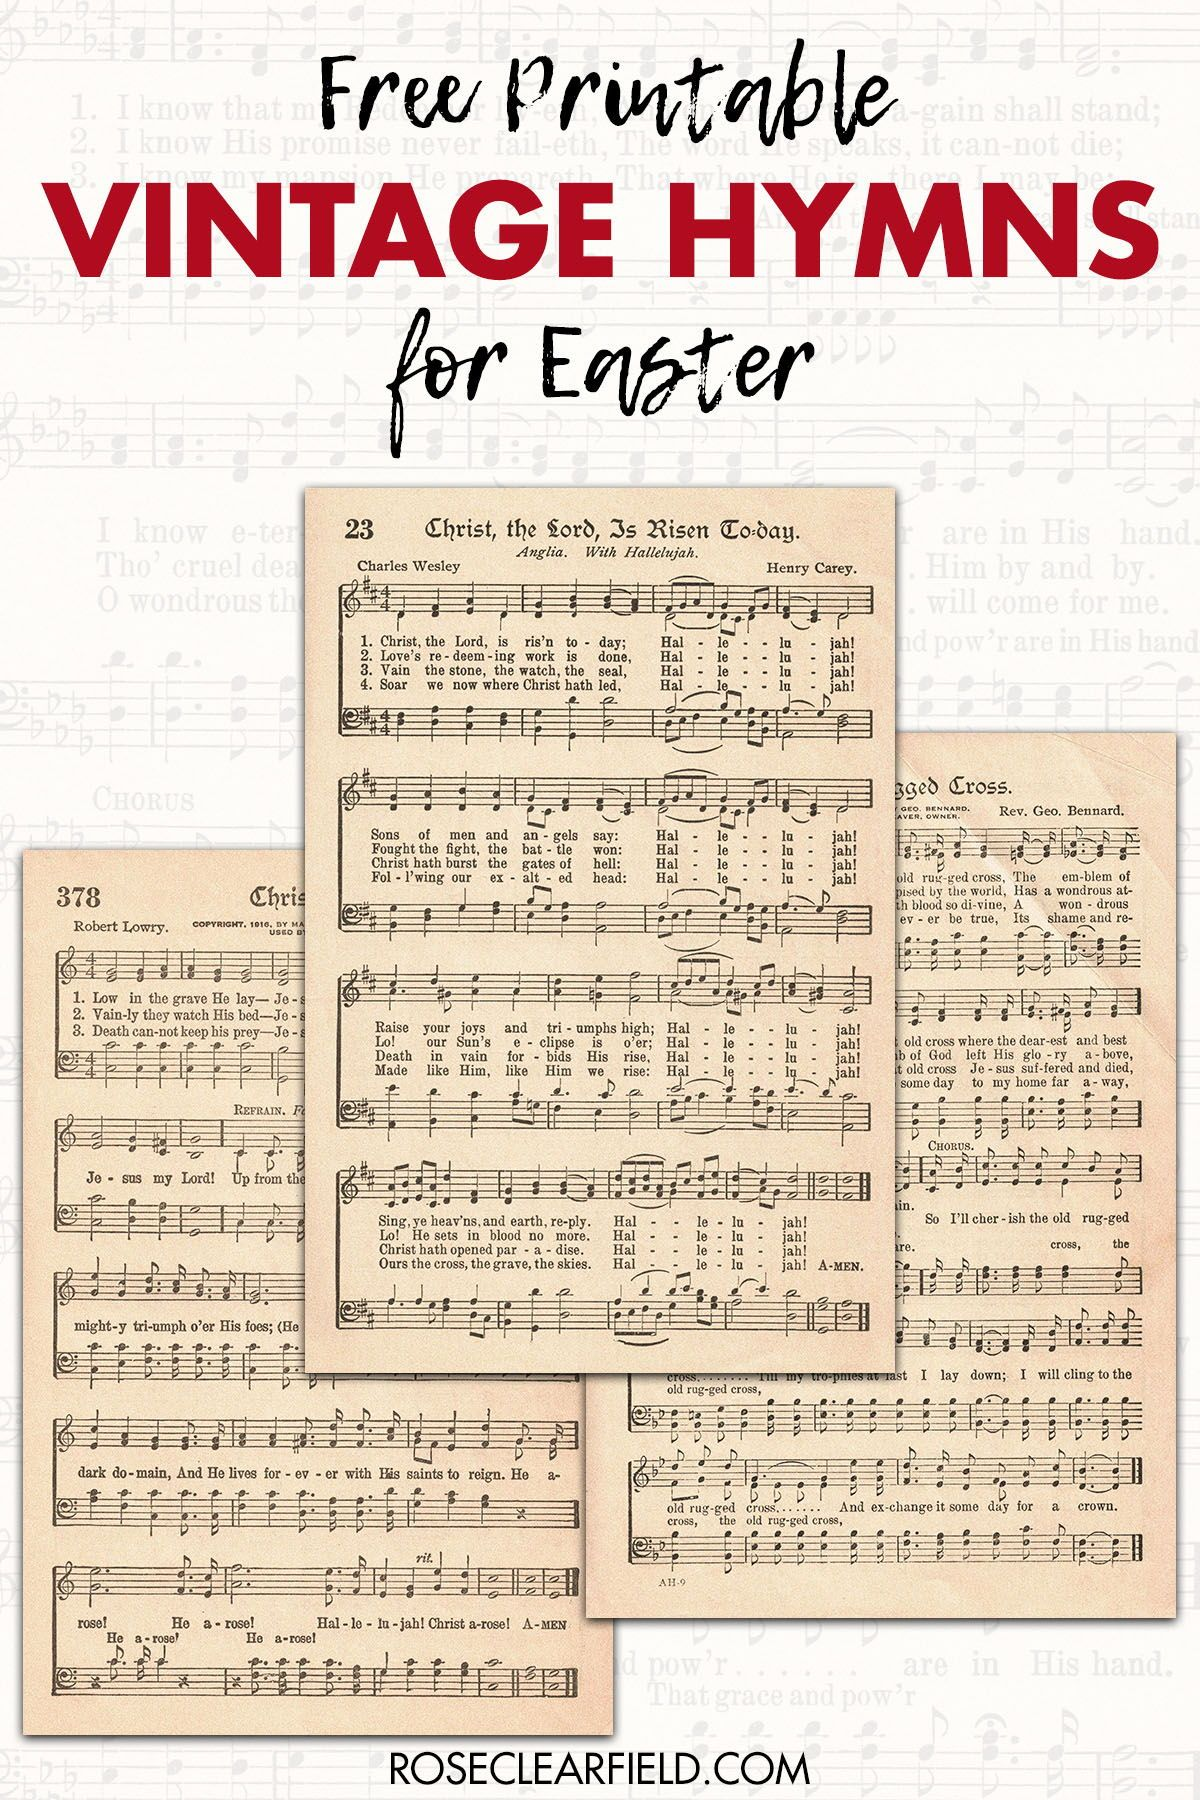 Free Printable Vintage Hymns for Easter